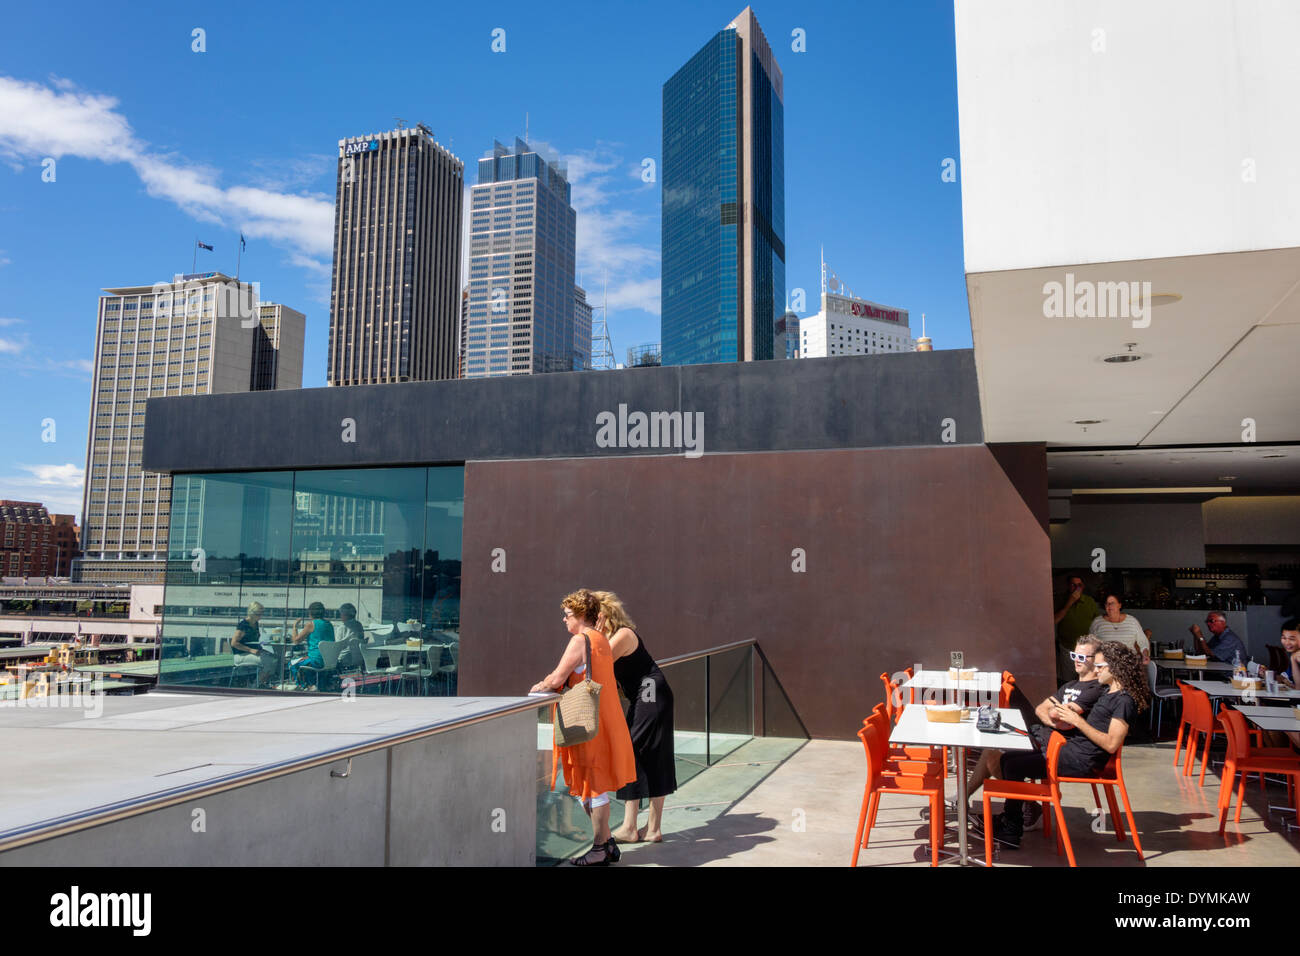 Sydney NSW Australie Nouvelle Galles du Sud Ouest Circular Quay Musée d'art contemporain sur le toit MCA cafe restaurant CBD Central Business District city rayray714 Photo Stock